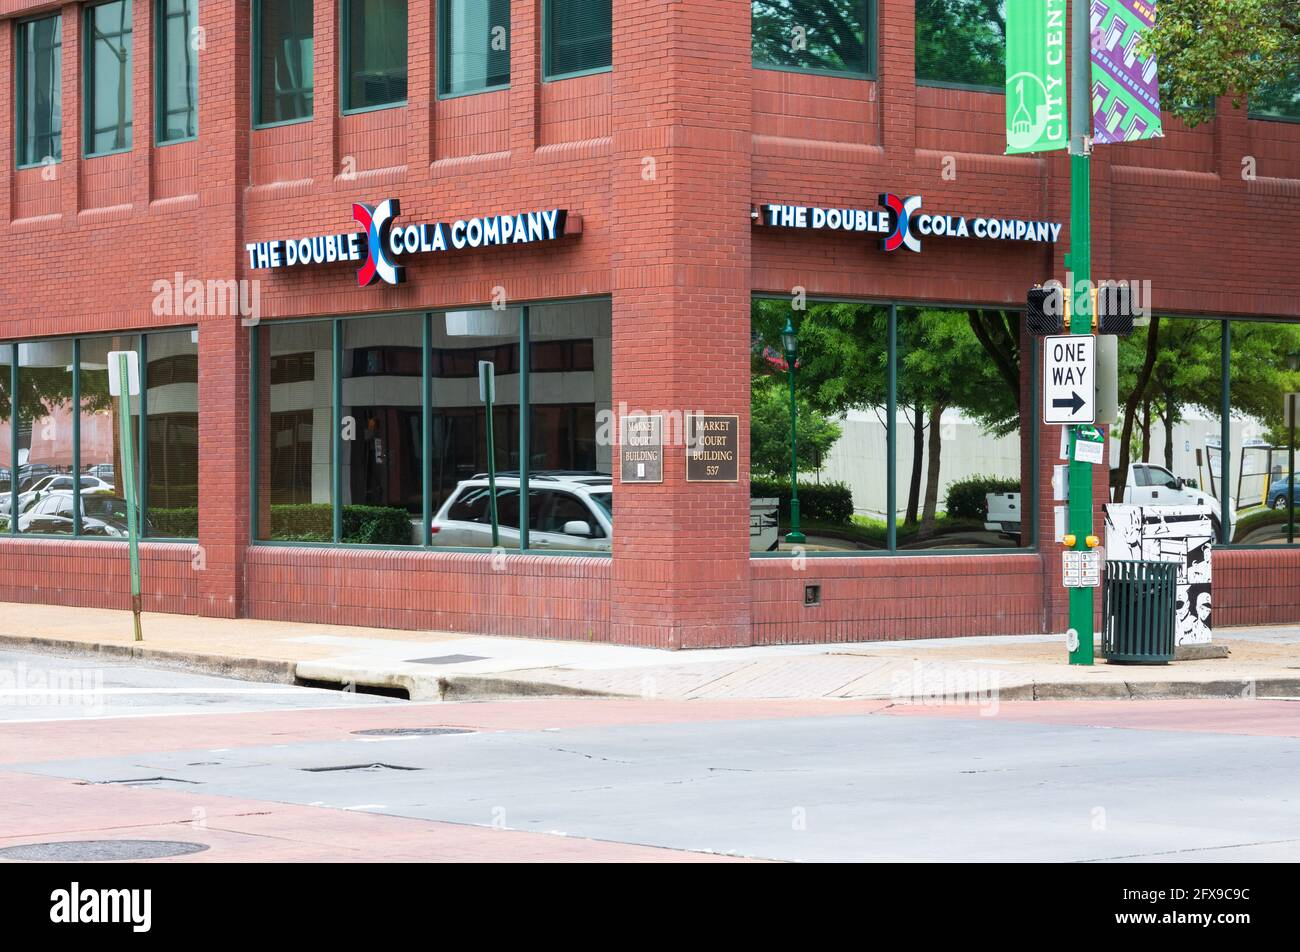 CHATTANOOGA, TN, USA-10 MAY 2021: Tight view of the Market Court Building showing the sign and logo of TheDouble Cola Company. Stock Photo